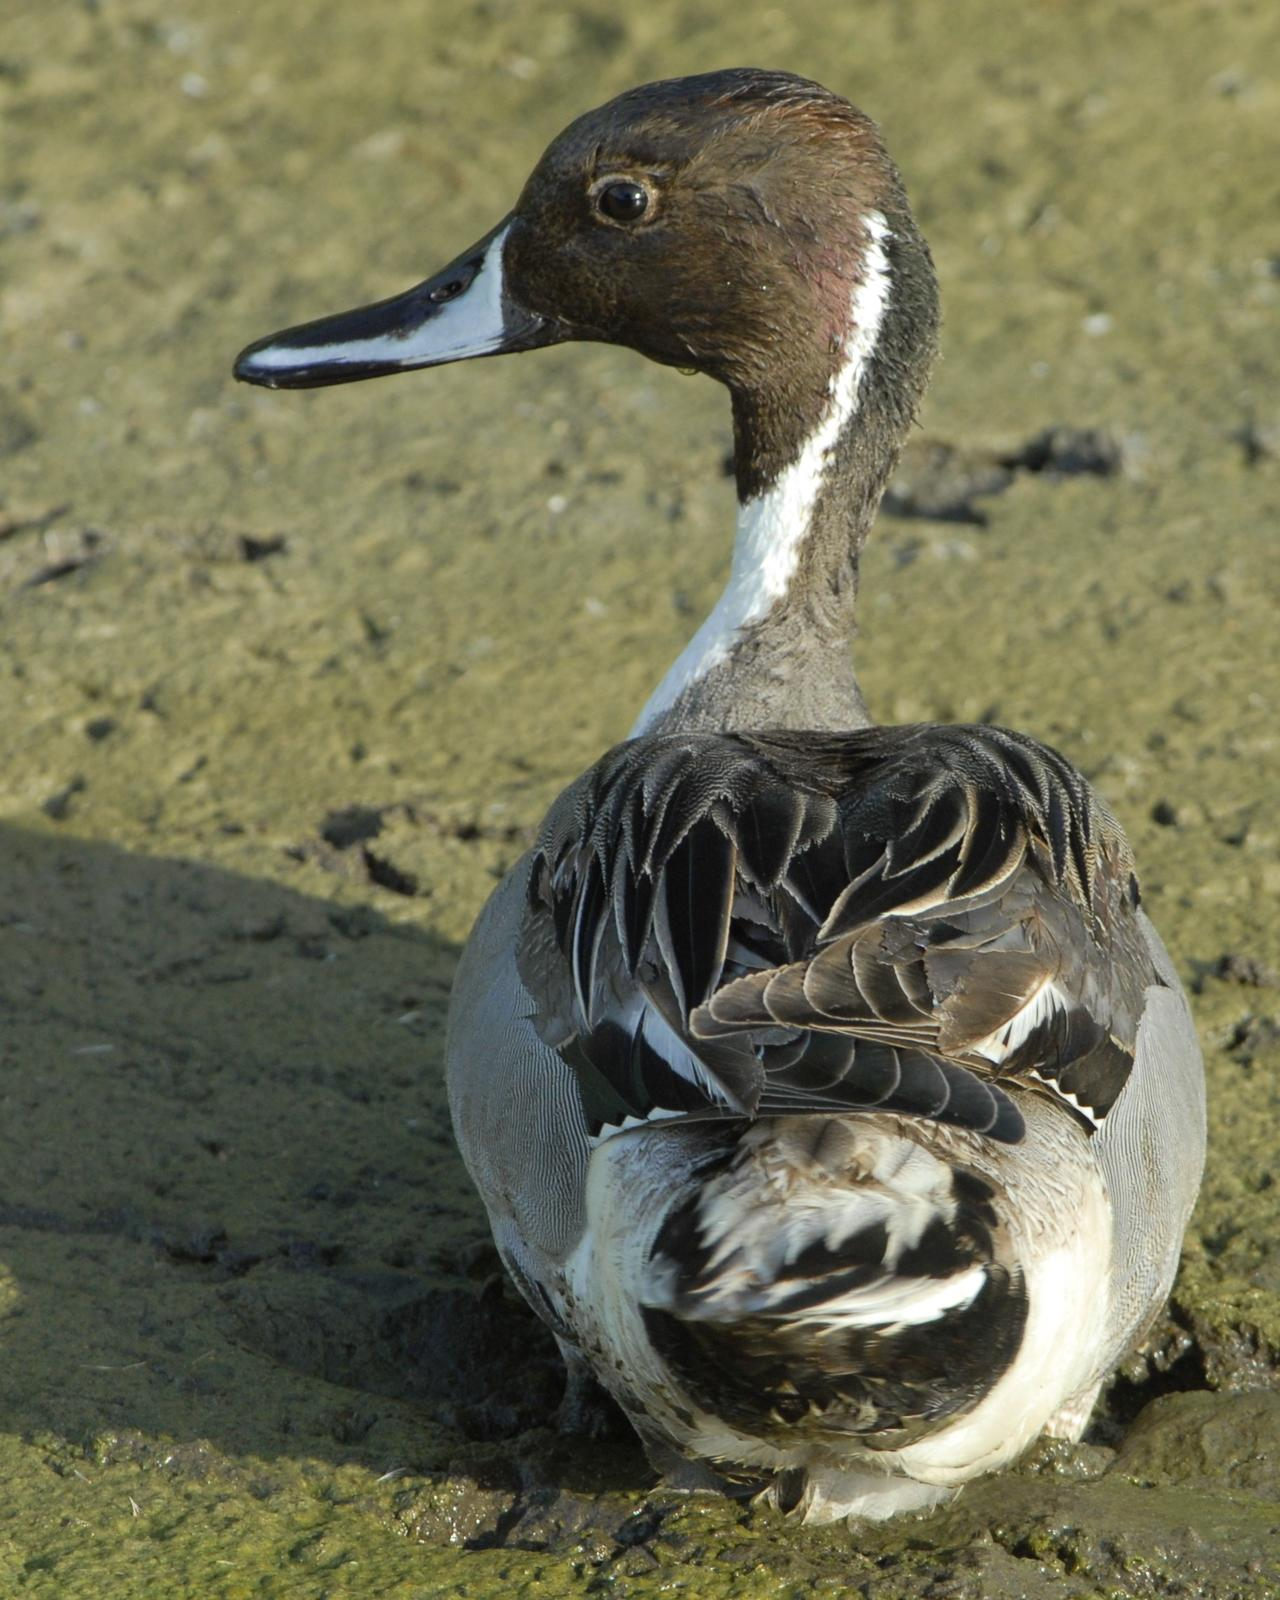 Northern Pintail Photo by David Hollie